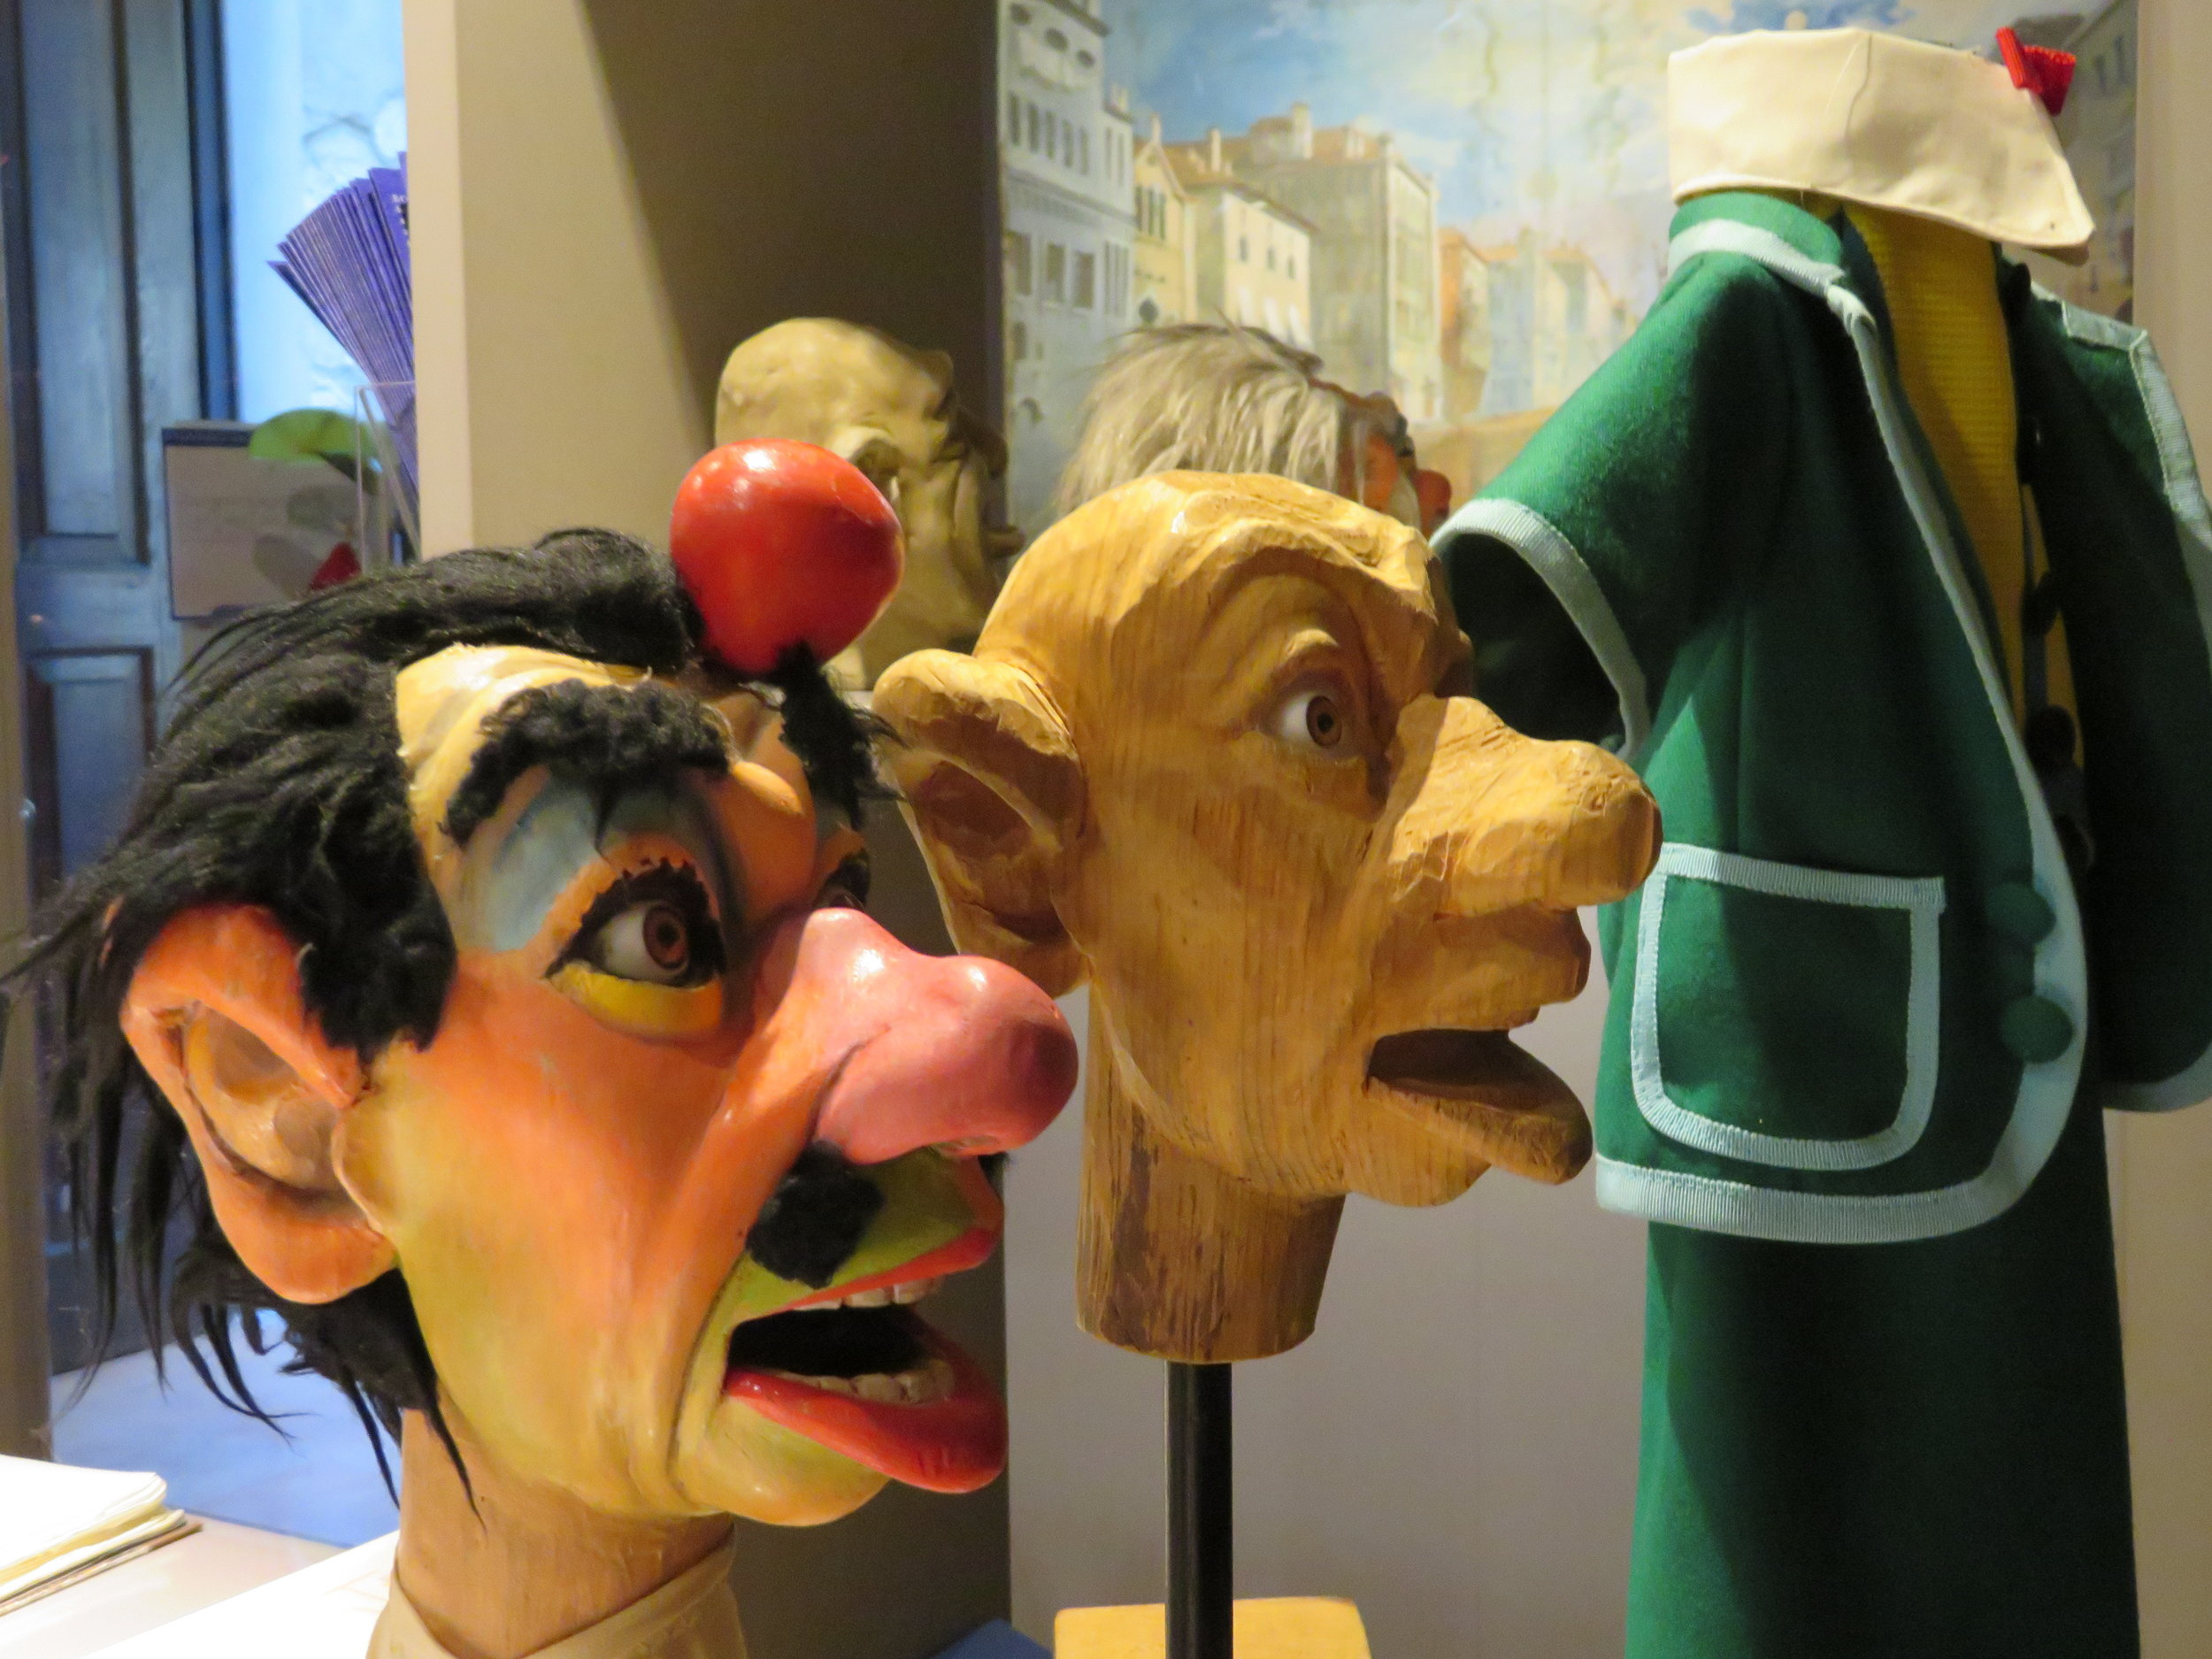 The museum has hundreds of puppets most of which are hand carved and hand painted.